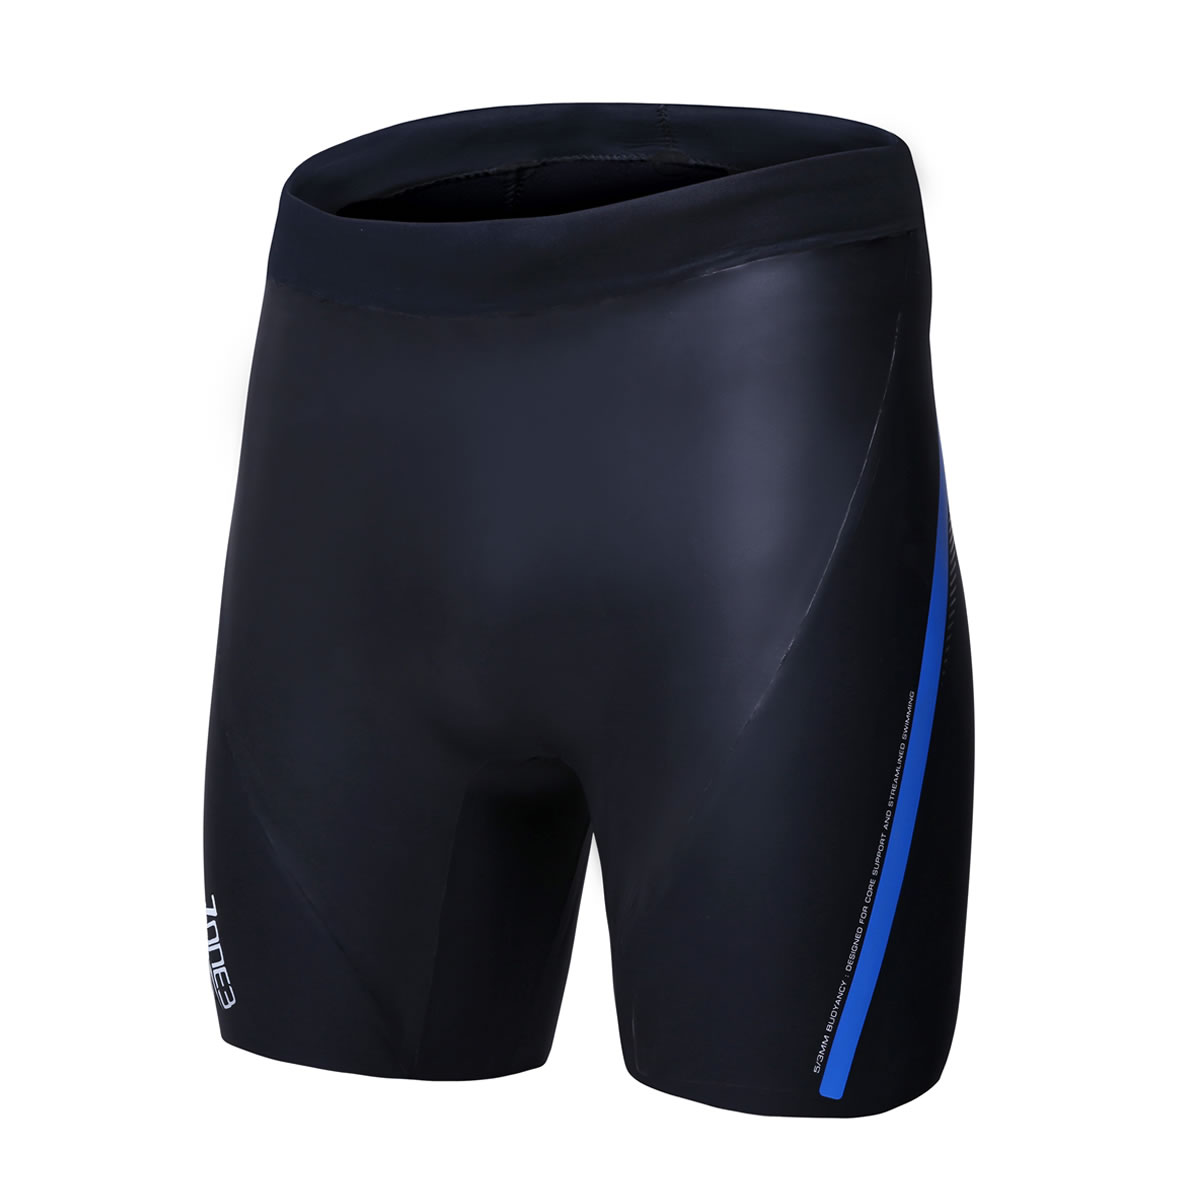 Buoyancy Shorts The Original 5/3 - Zone3 - schwarz/blau